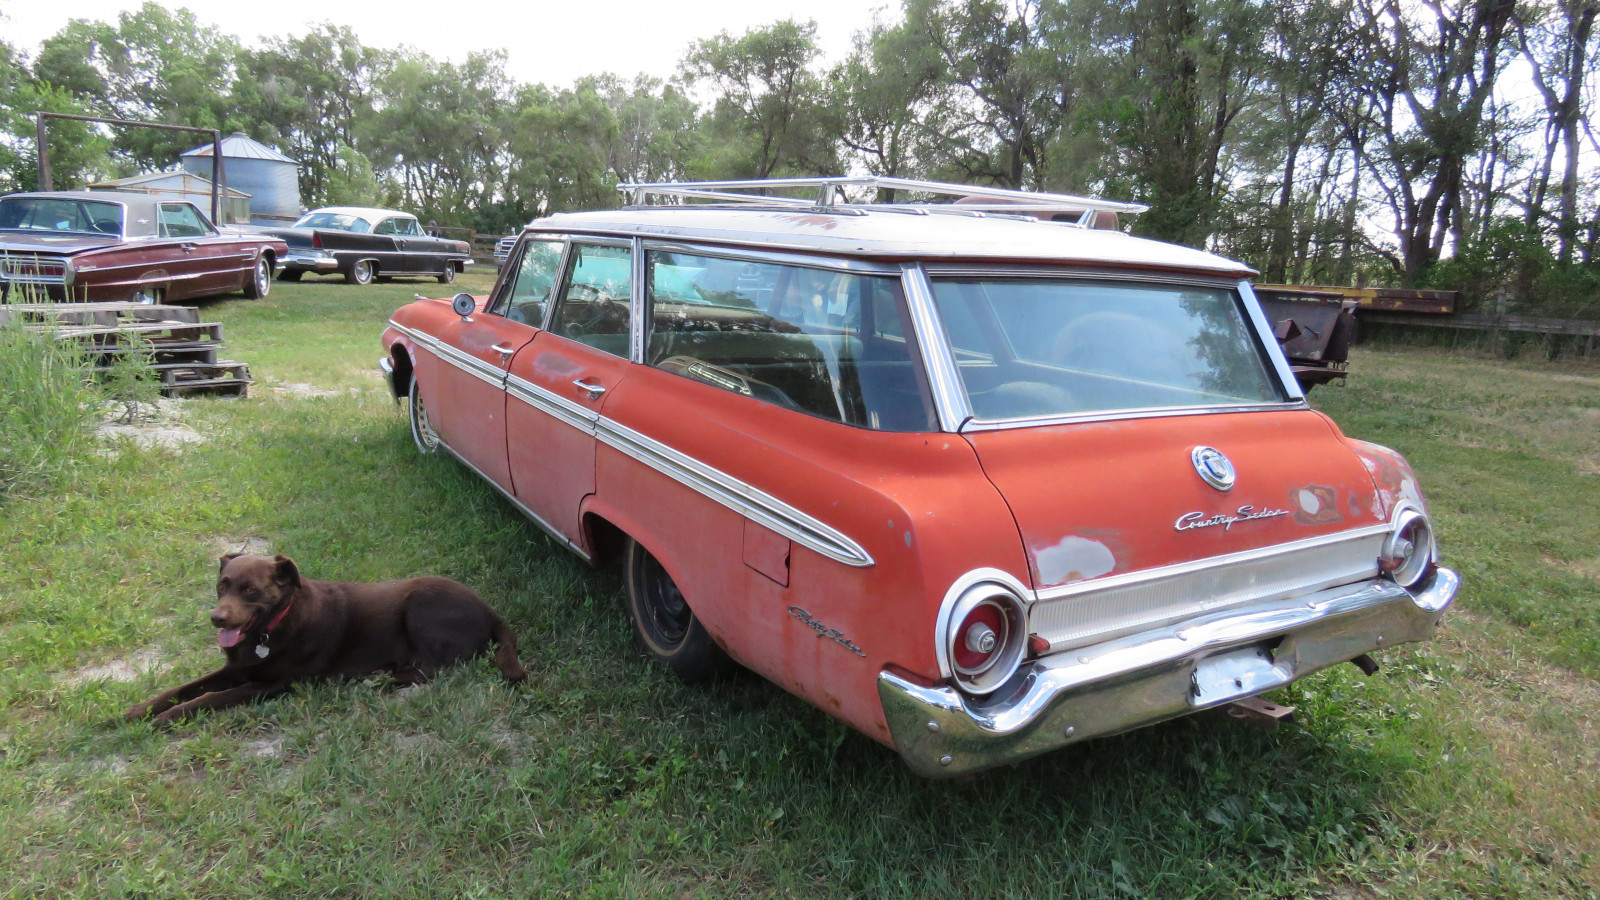 1962 Ford Country Sedan 4dr Wagon - Image 6